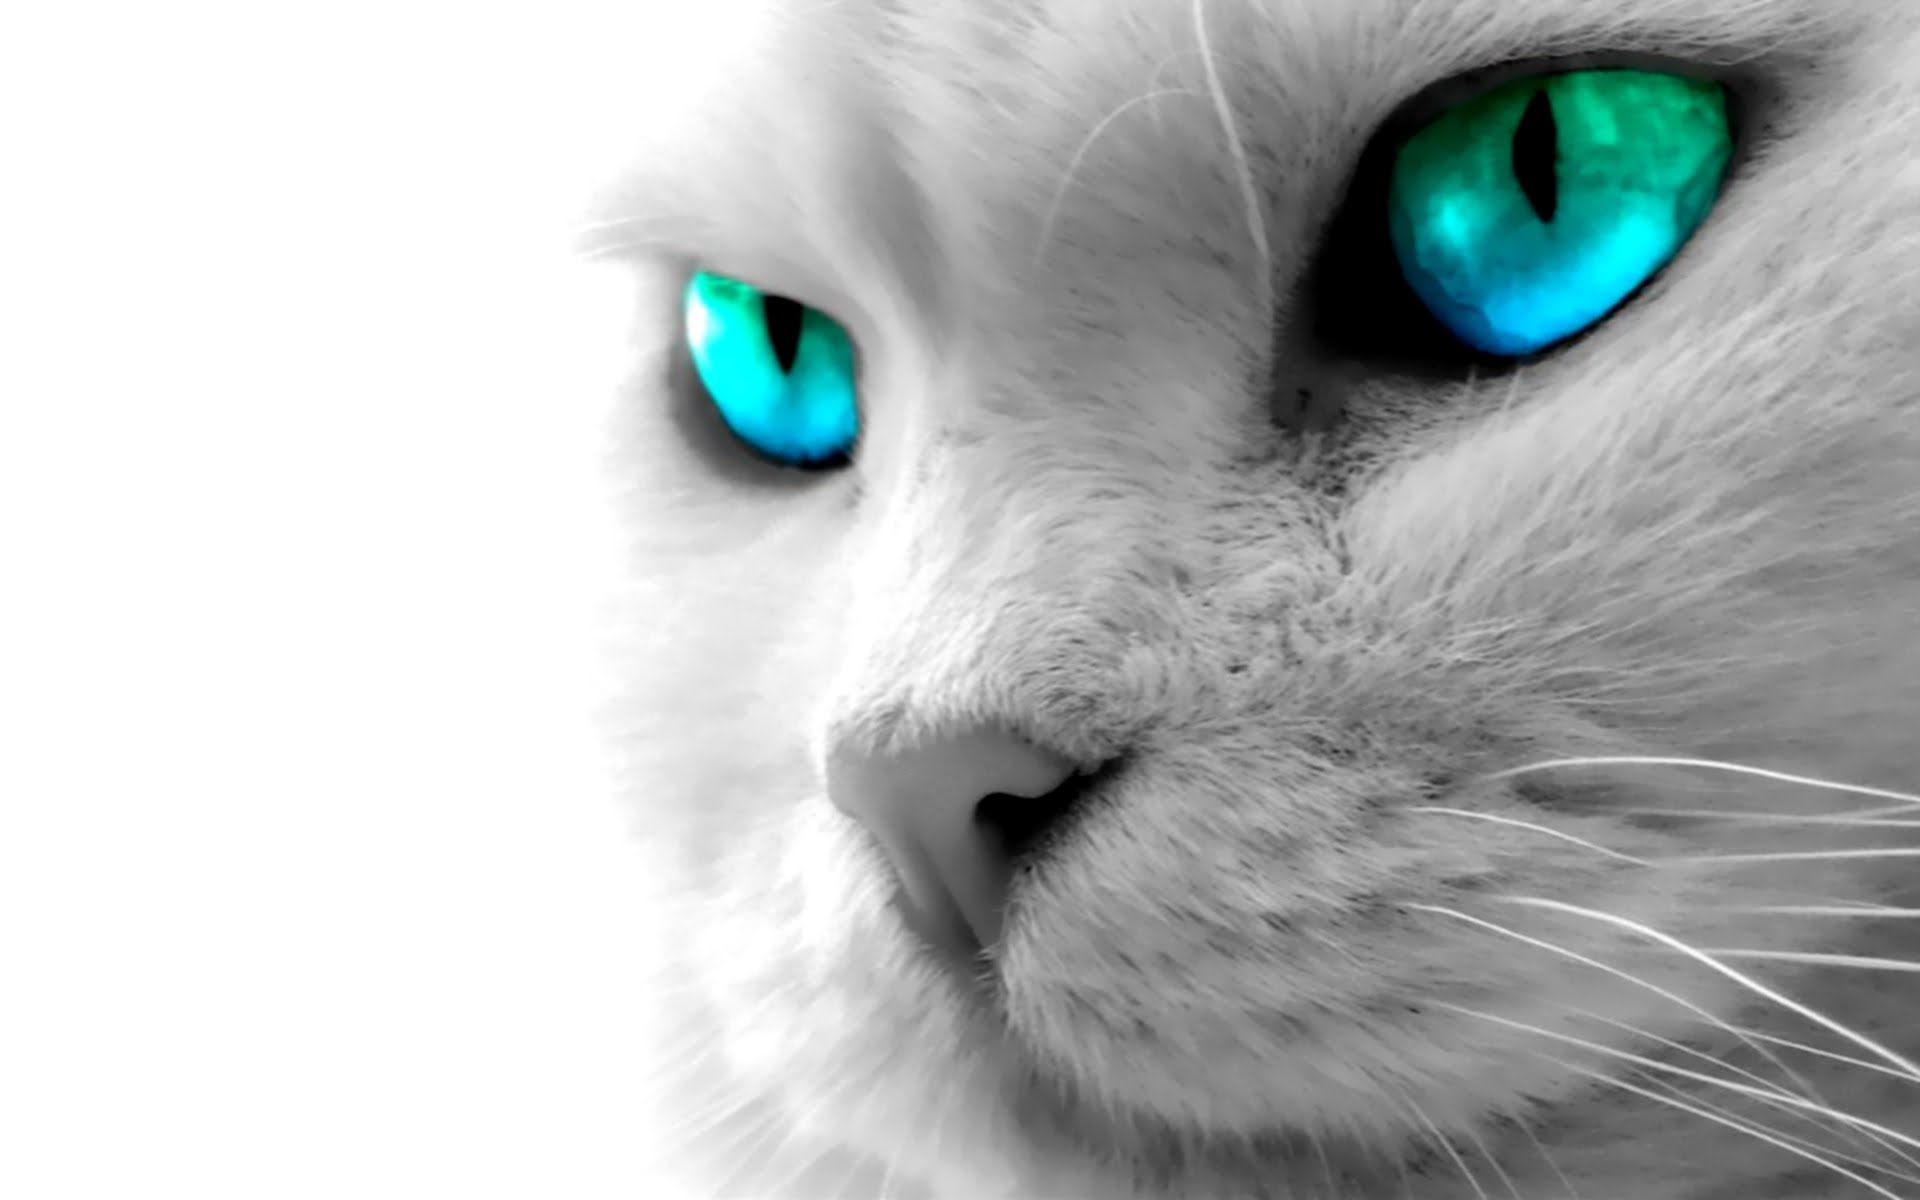 iPhone 6 Plus Wallpapers: Animal Wallpapers - YouTube